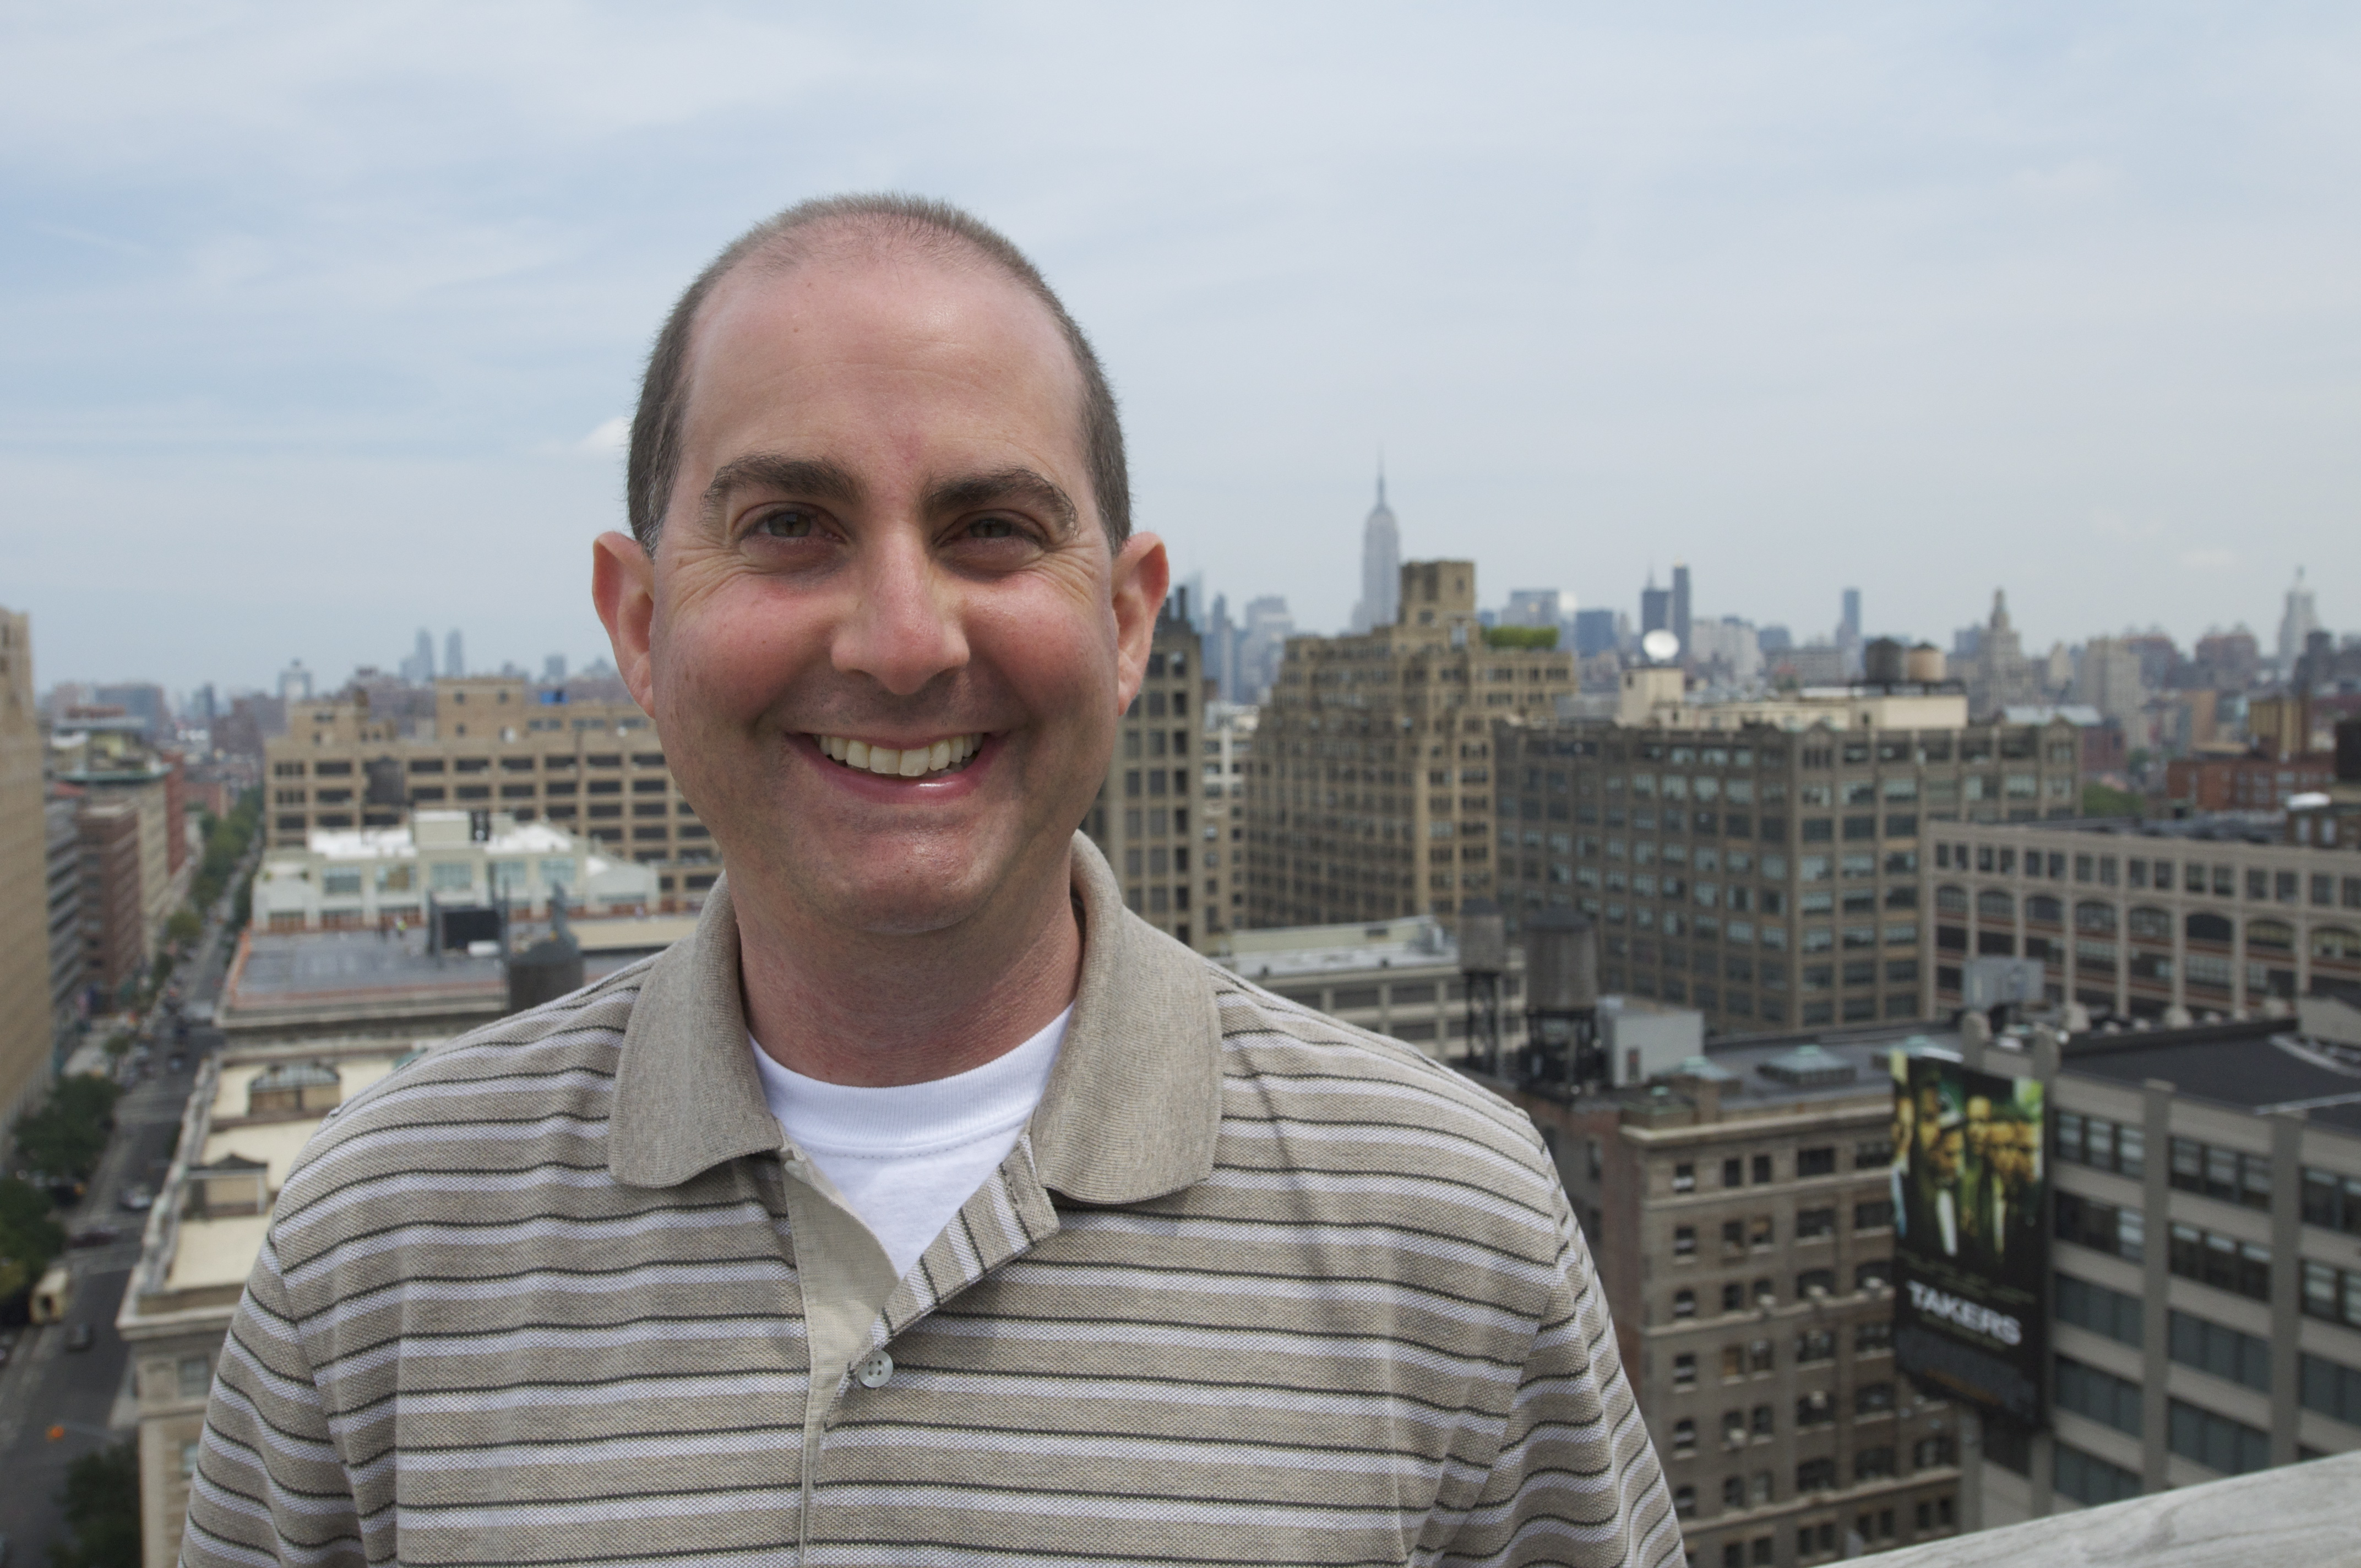 Sponsored Content and the News Media: Steve Rubel [INBOUND Bold Talk]